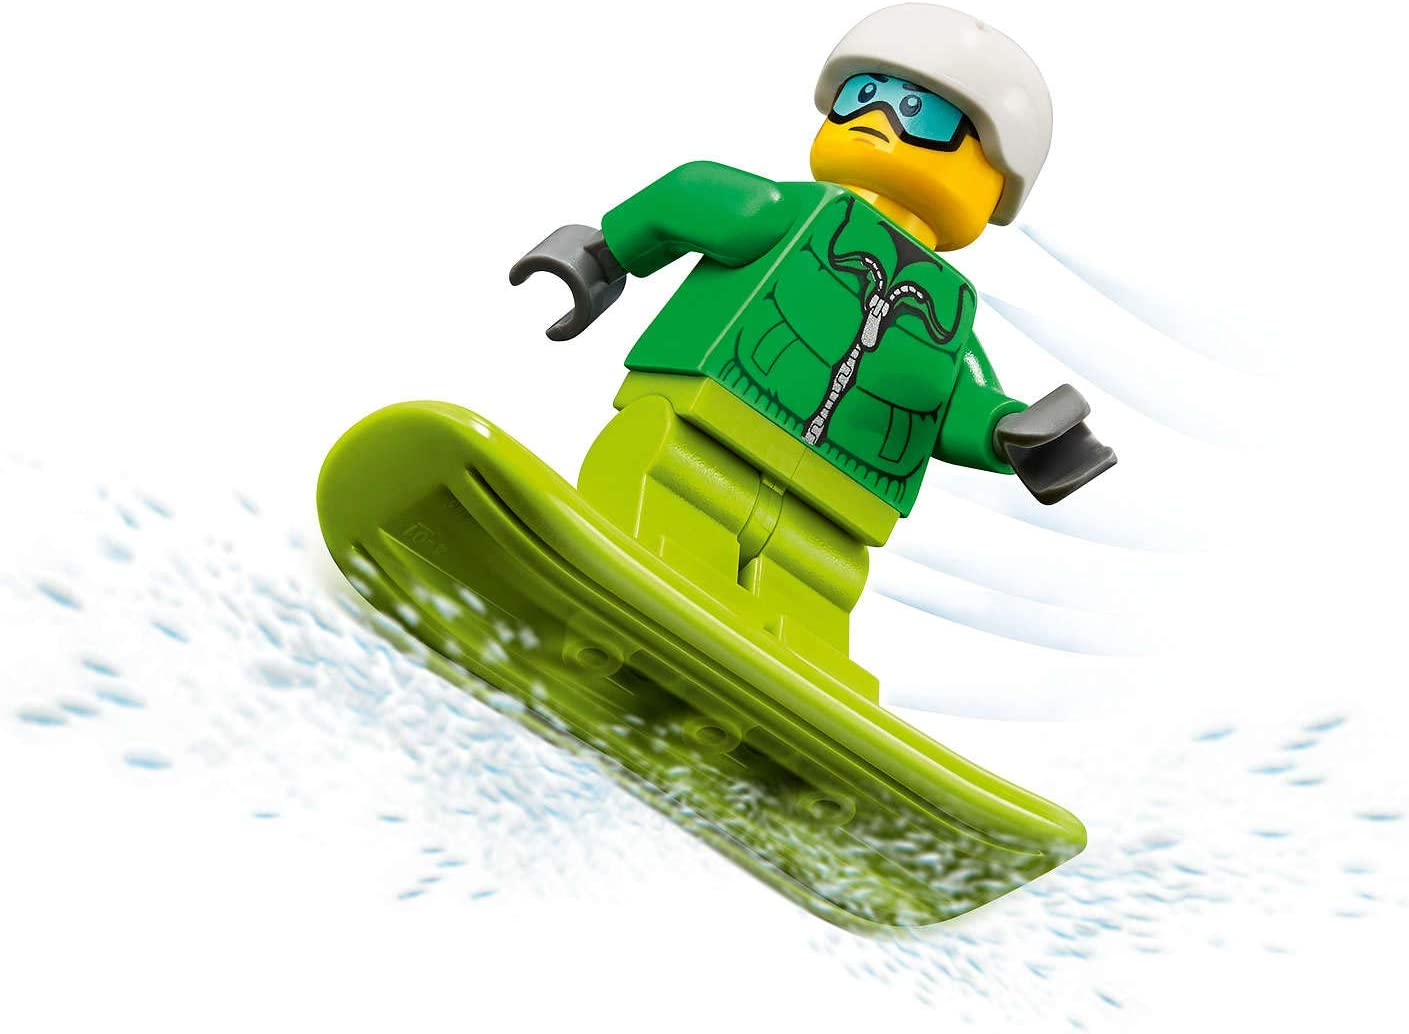 LEGO City Minifigure - Snowboarder (with Goggles and Snowboard) 60179